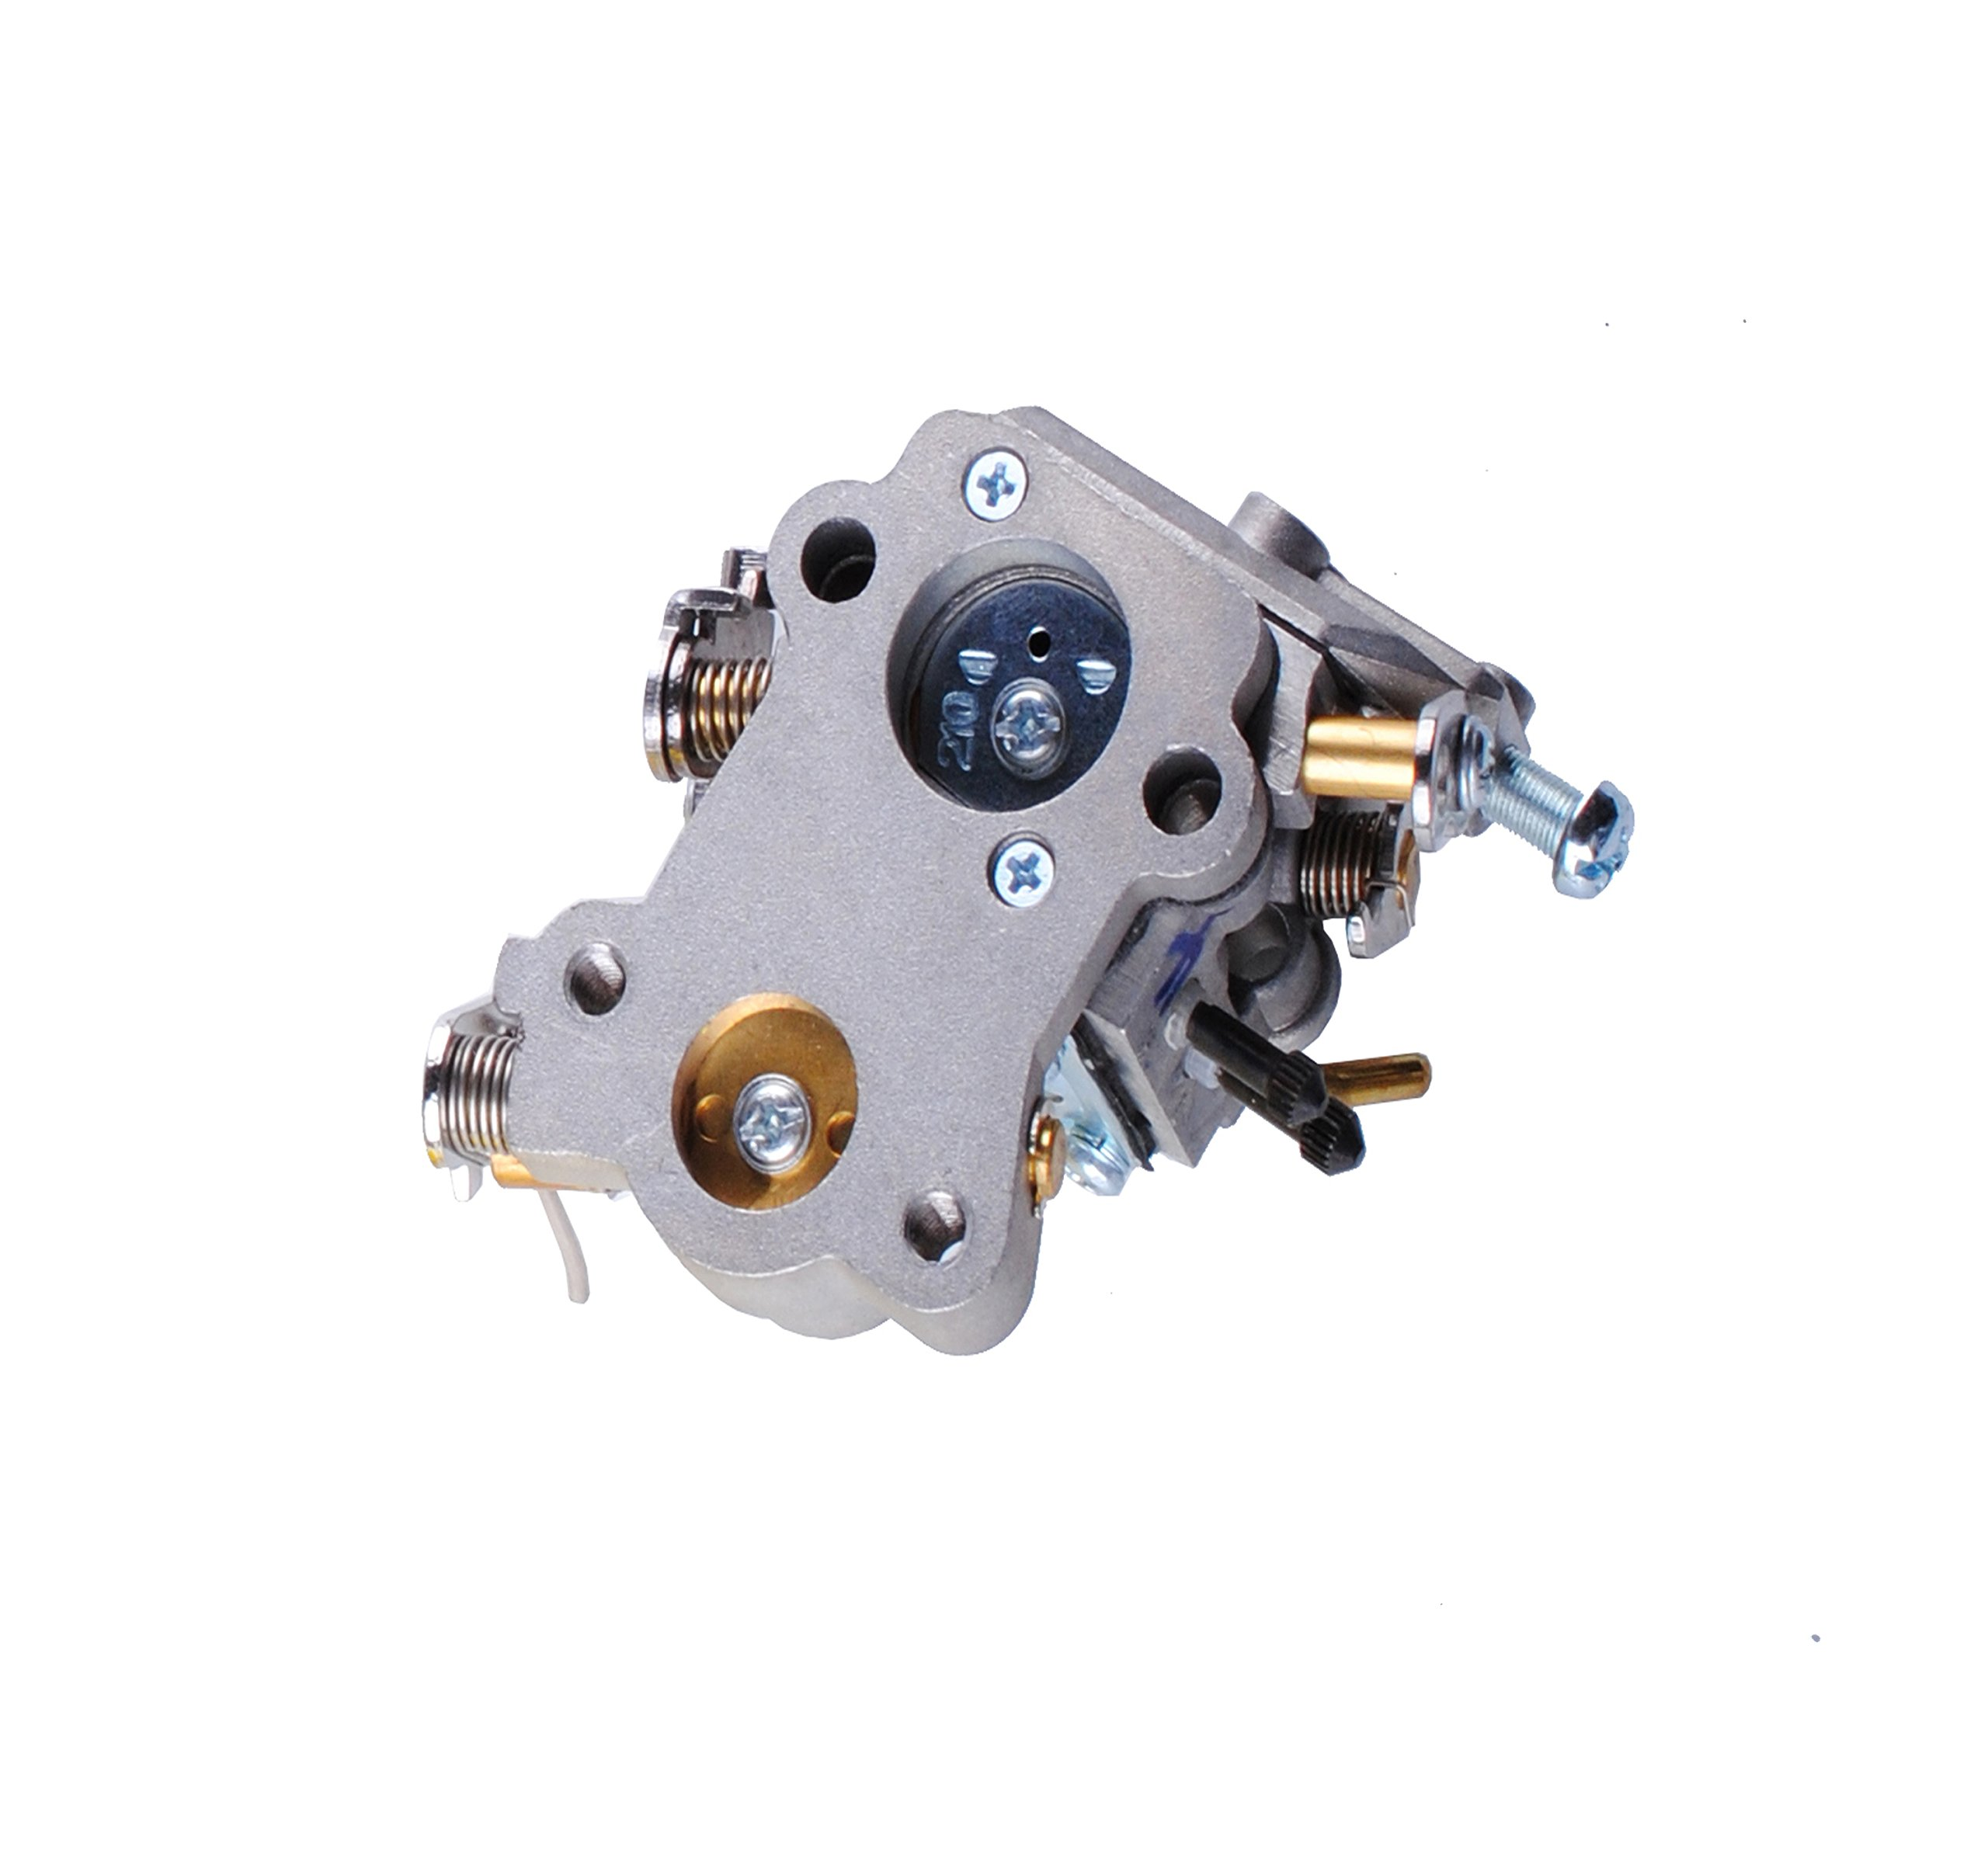 Podoy P3314 Carburetor For Poulan Chainsaw Parts 545070601 Air Fuel Diagram Filter With Adjustment Tool Tune Up